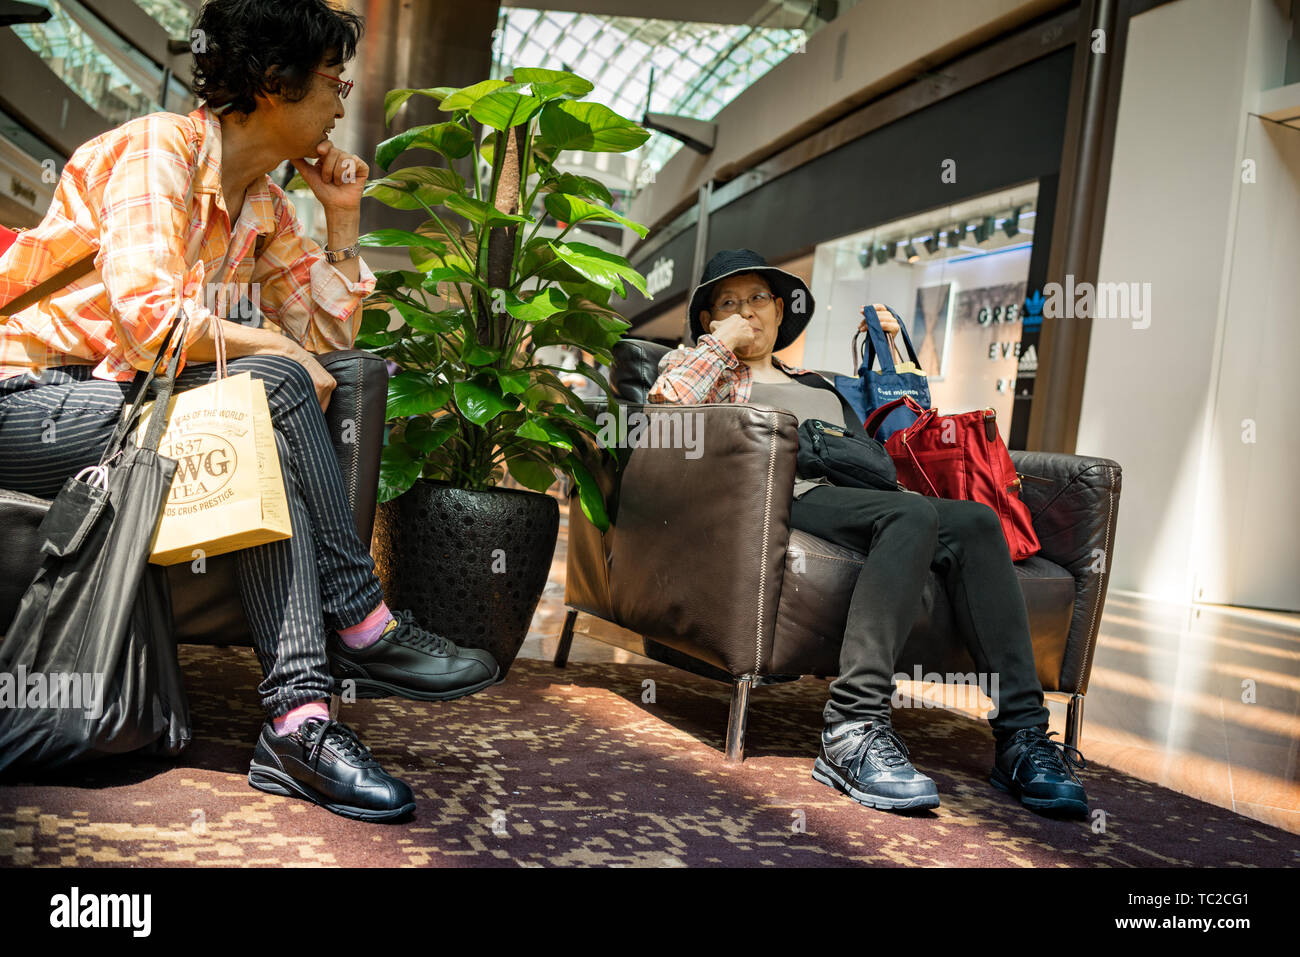 Il Marina Bay Sands shopping mall in Singapore Foto Stock